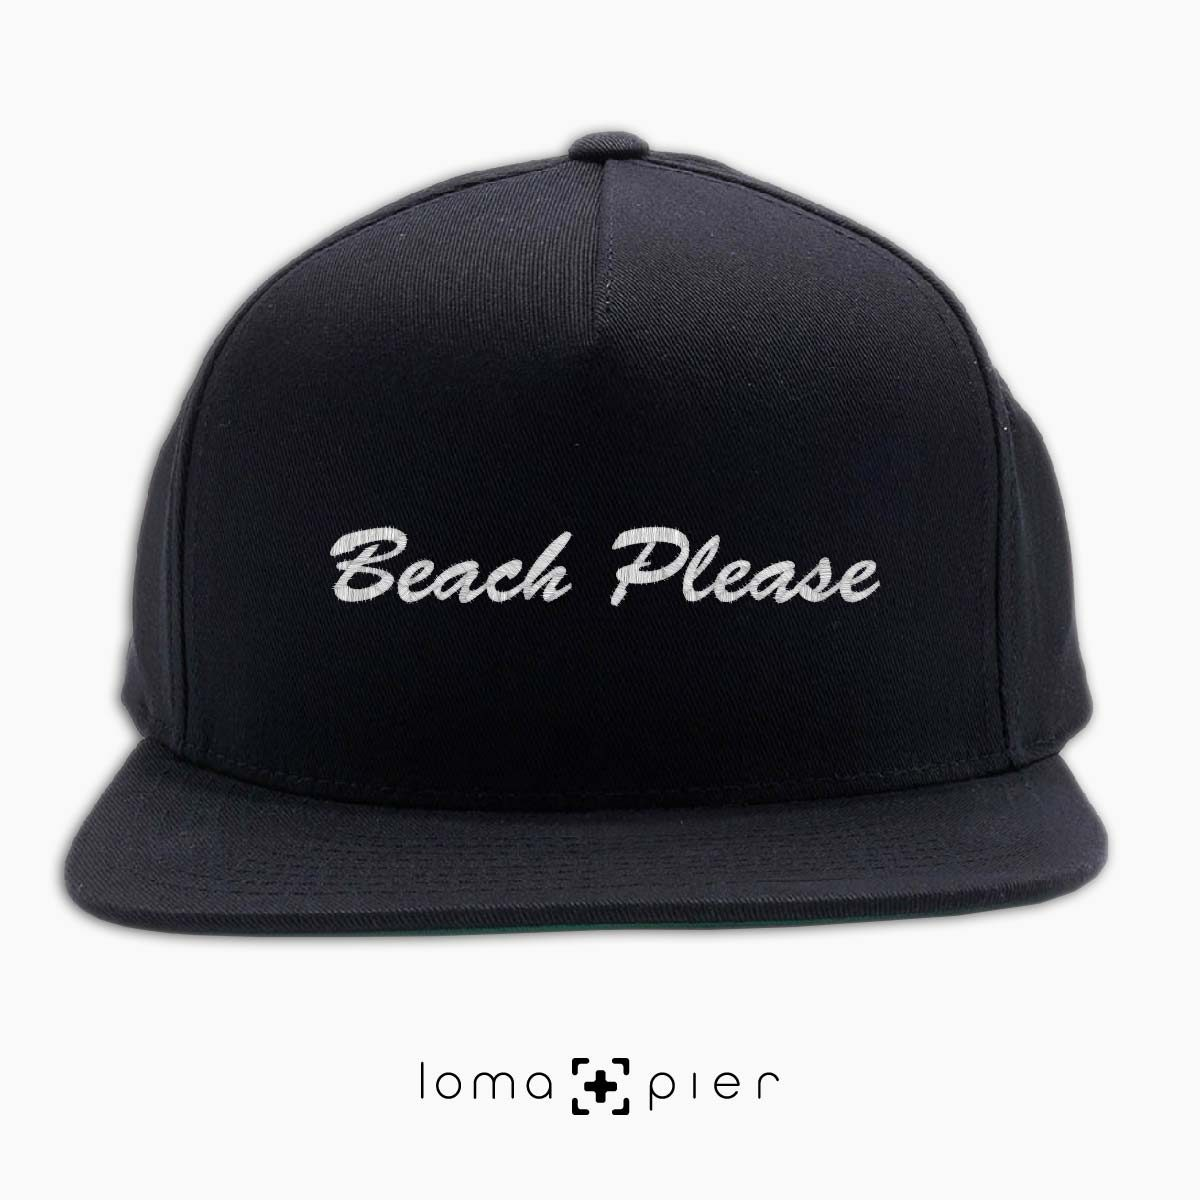 BEACH PLEASE embroidered on a black classic snapback hat with white thread by loma+pier hat store